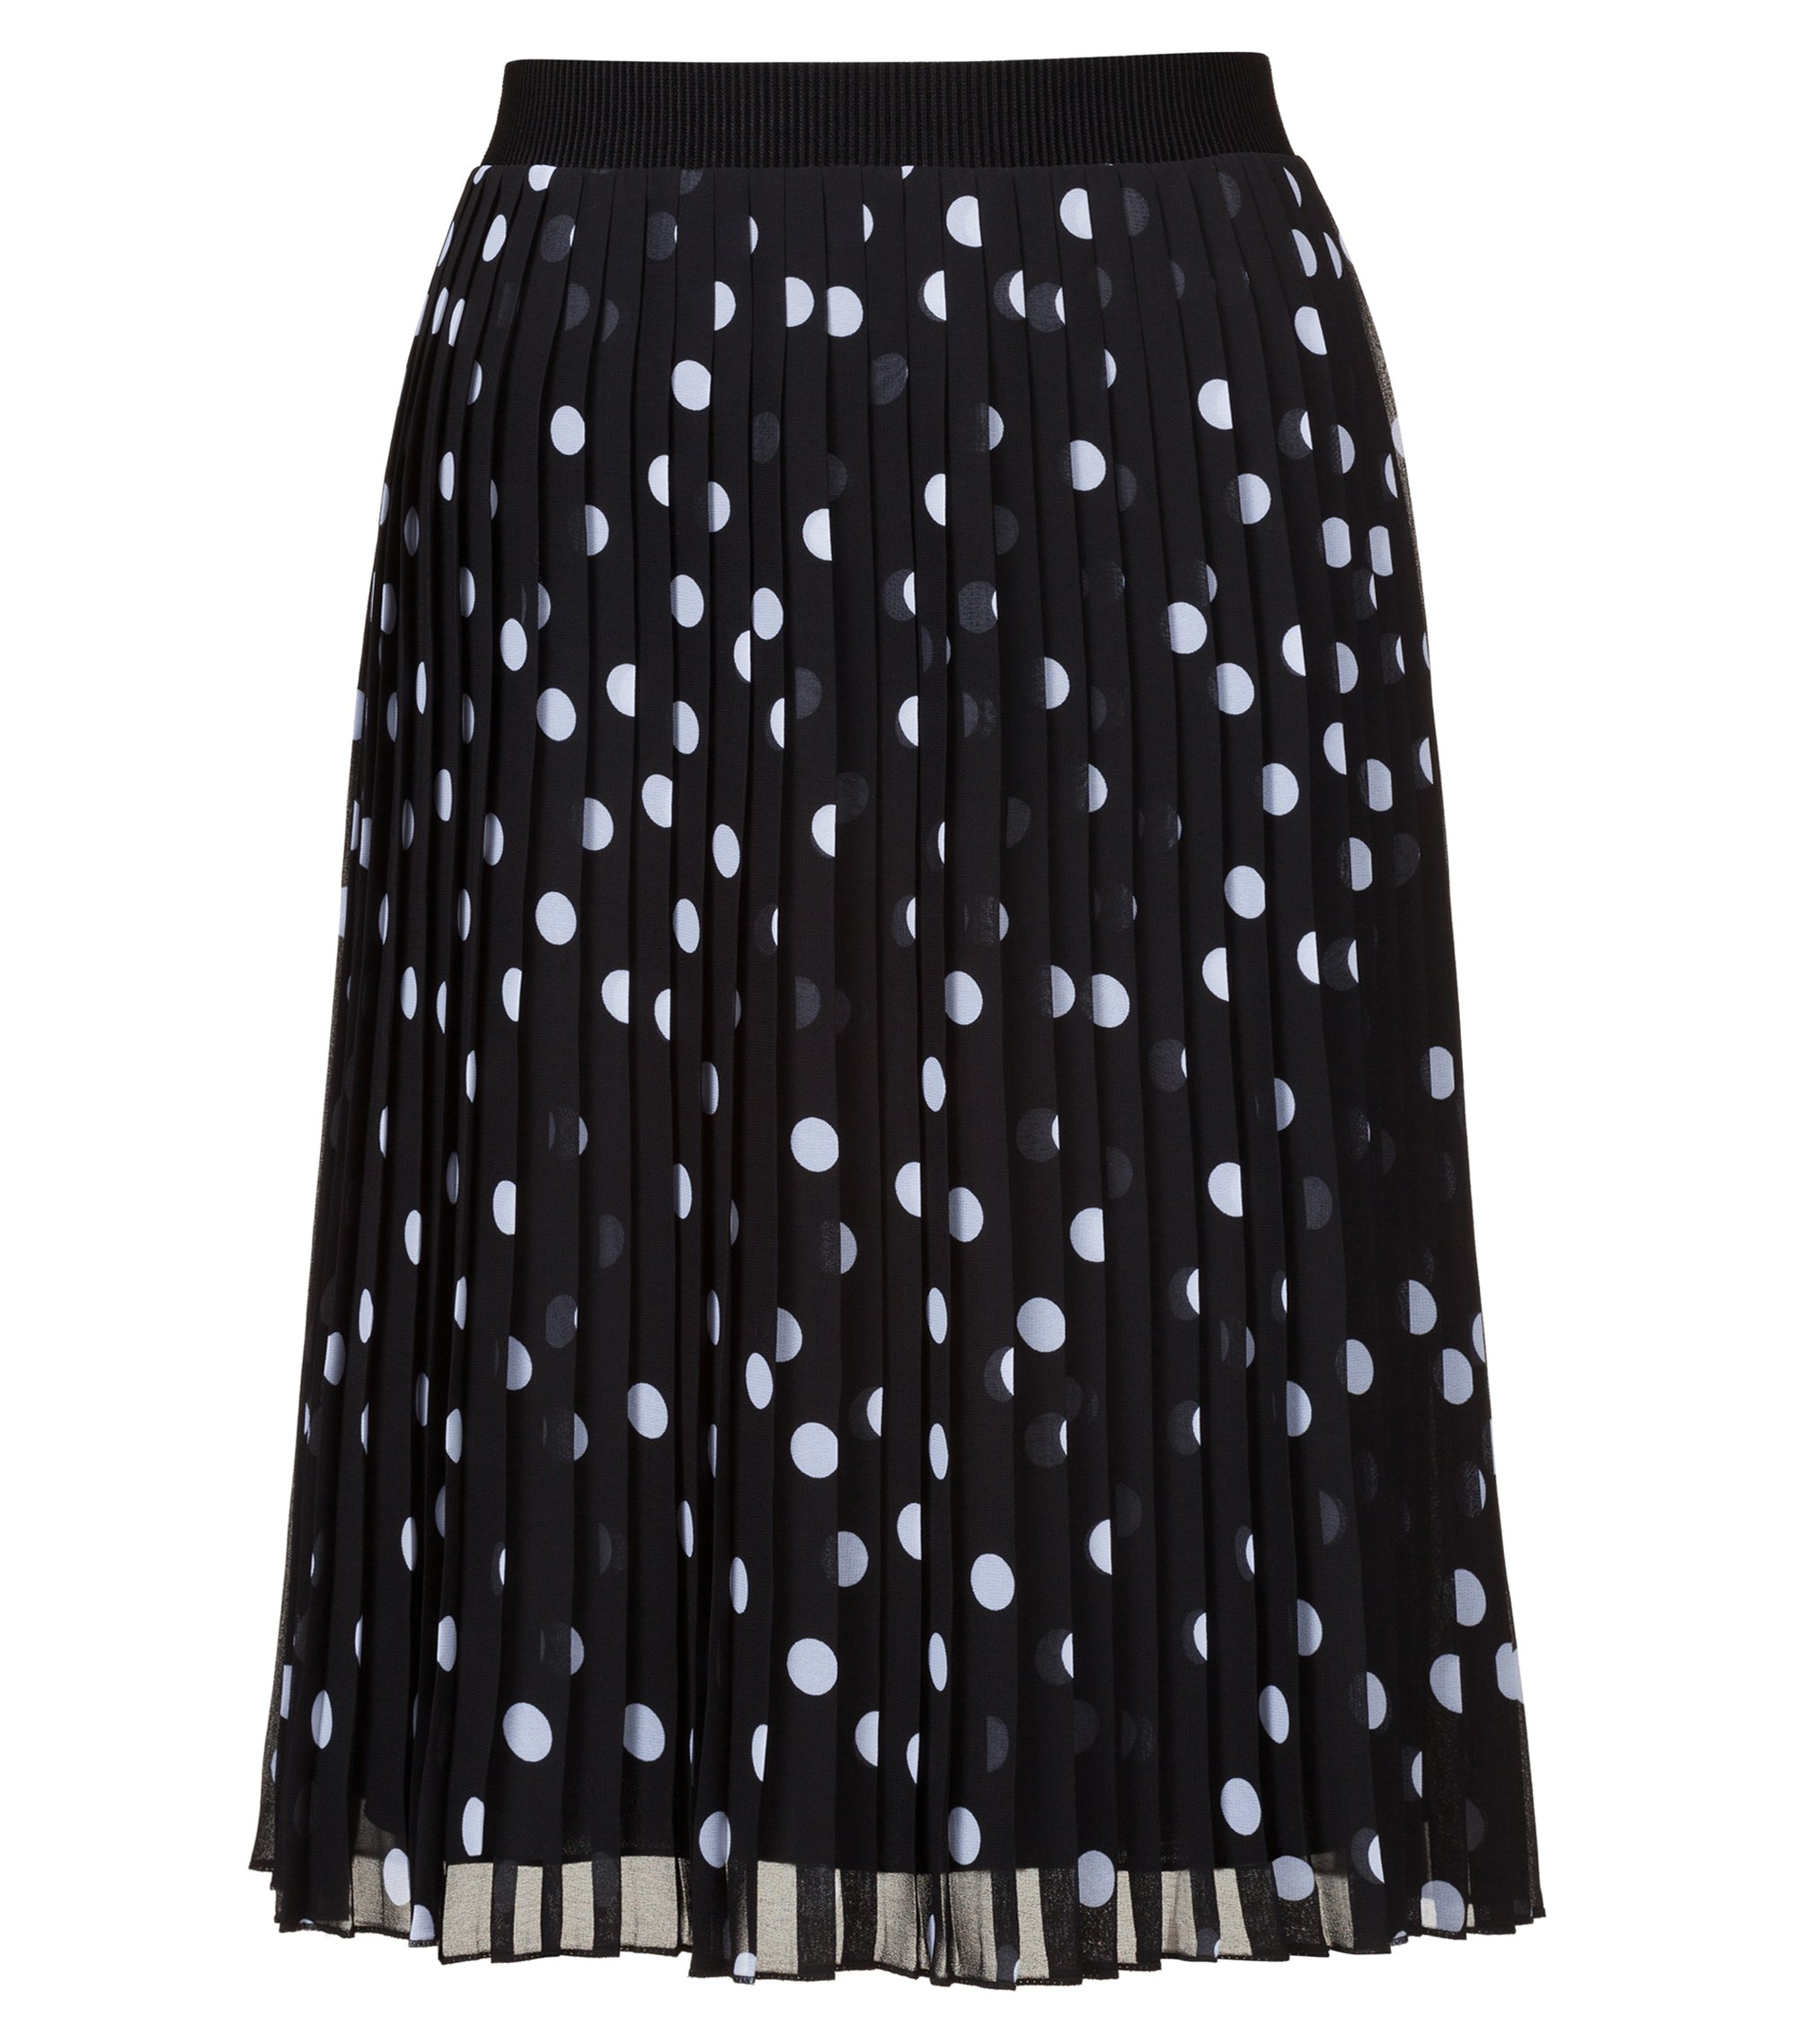 Spot-print plissé skirt with elasticated waistband, Patterned